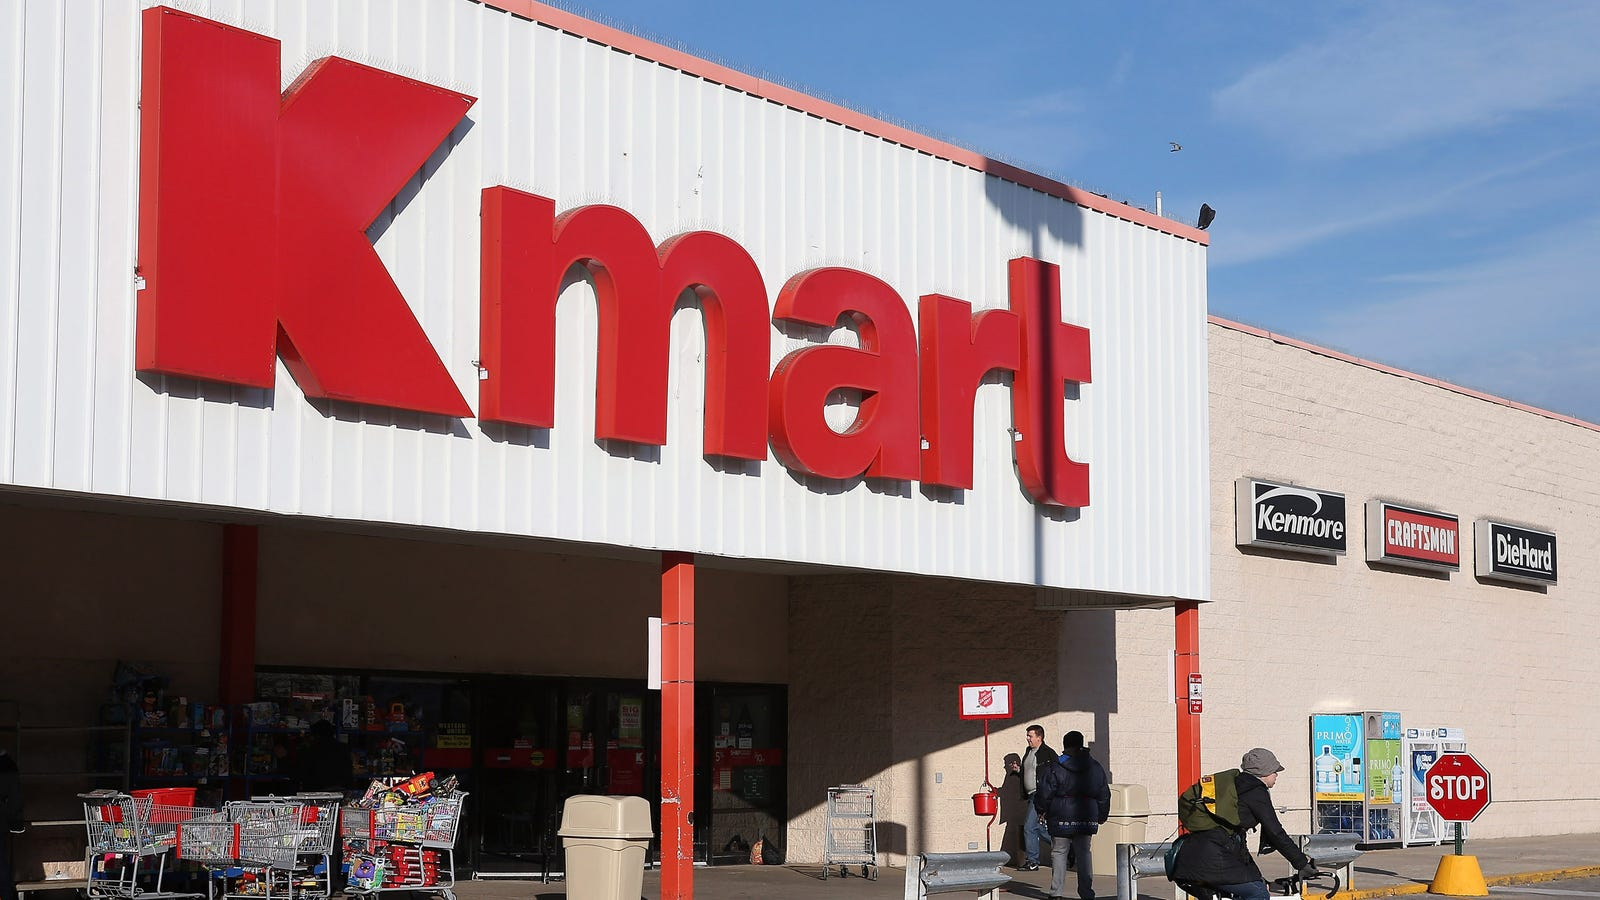 189s41ad147vxjpg Job Application Form For Kmart on free generic, blank generic, part time,